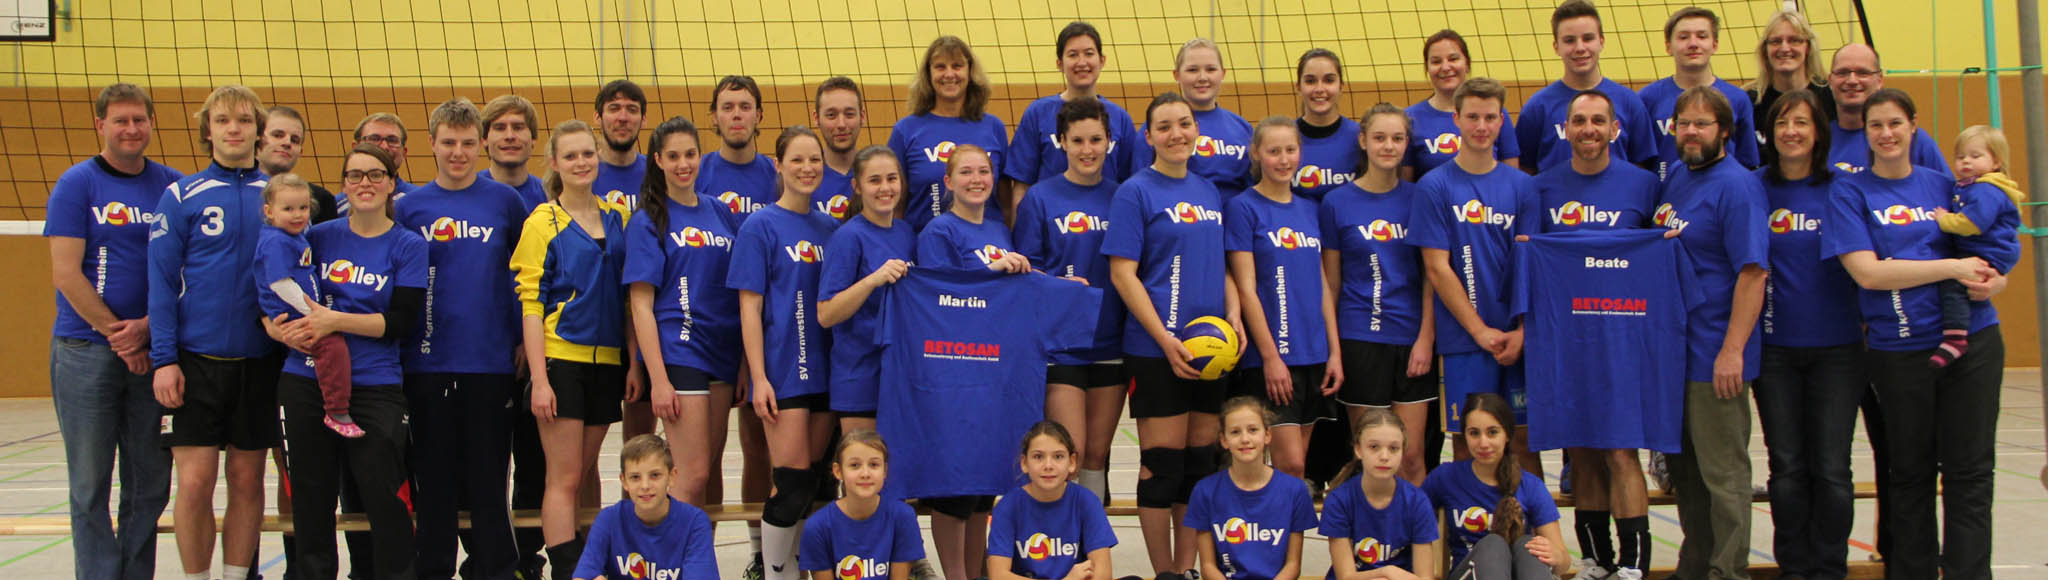 SVK Volleyball Ueber uns